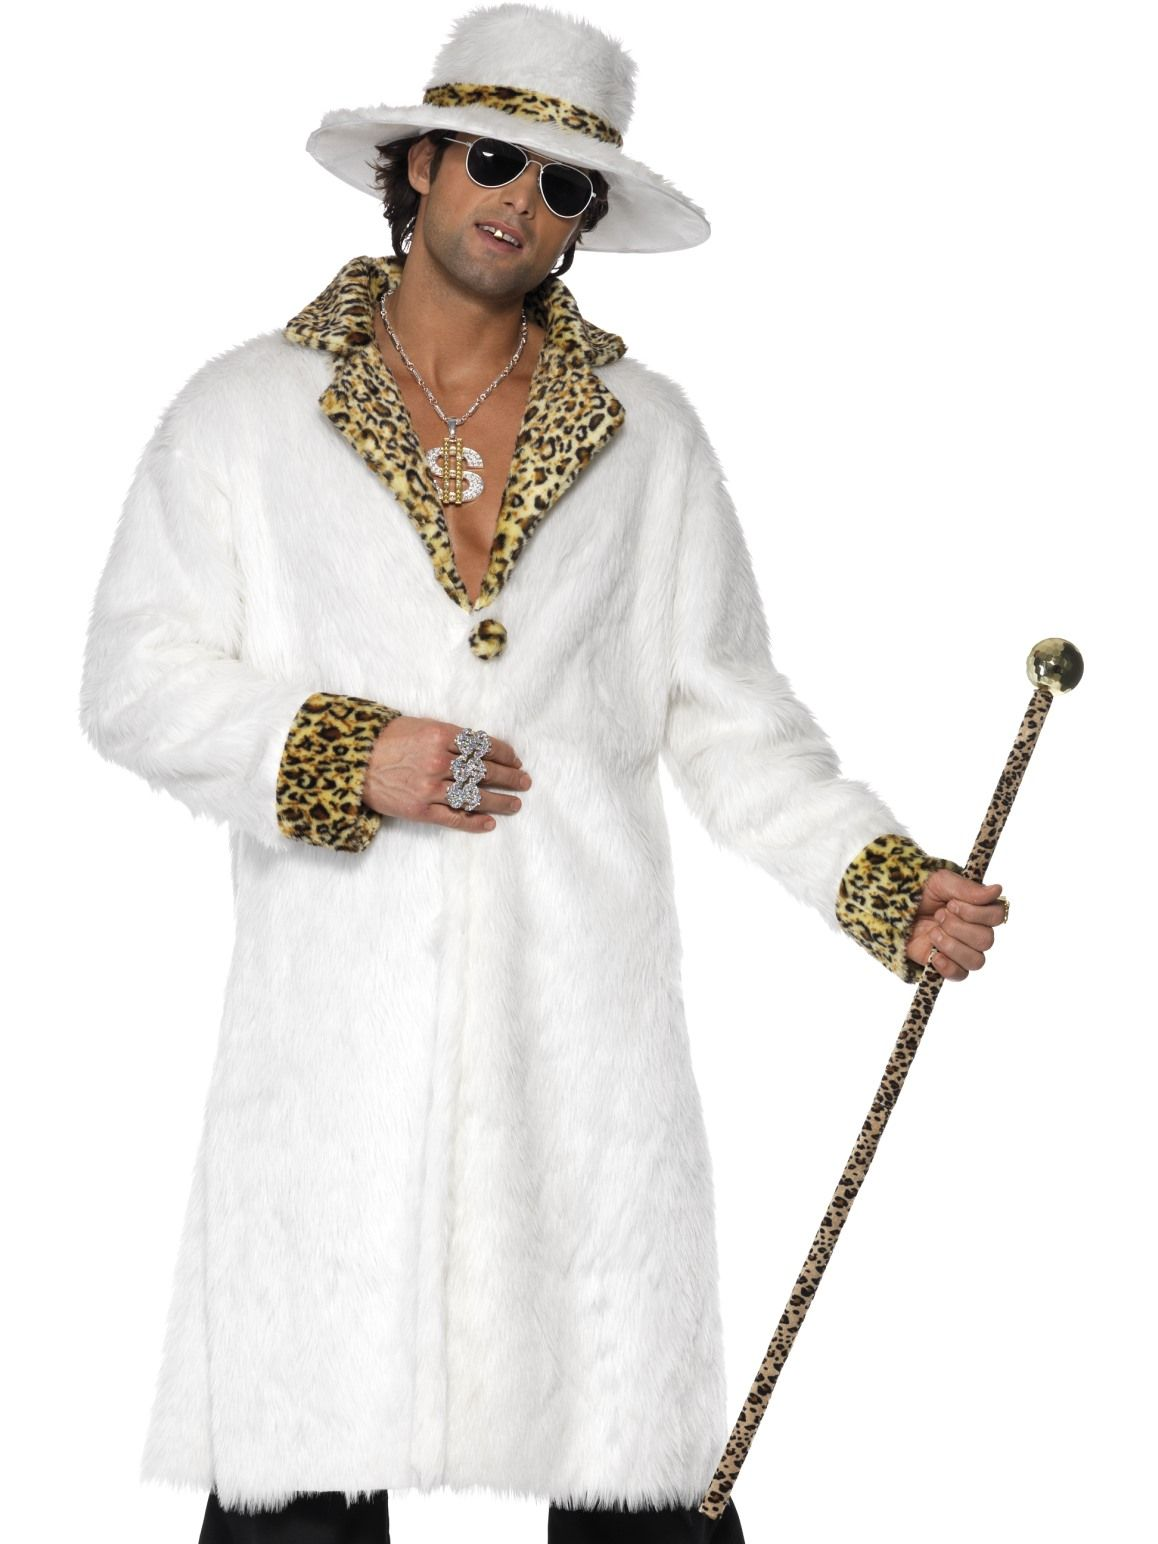 Pimp White 70s Costume - Buy Online Only